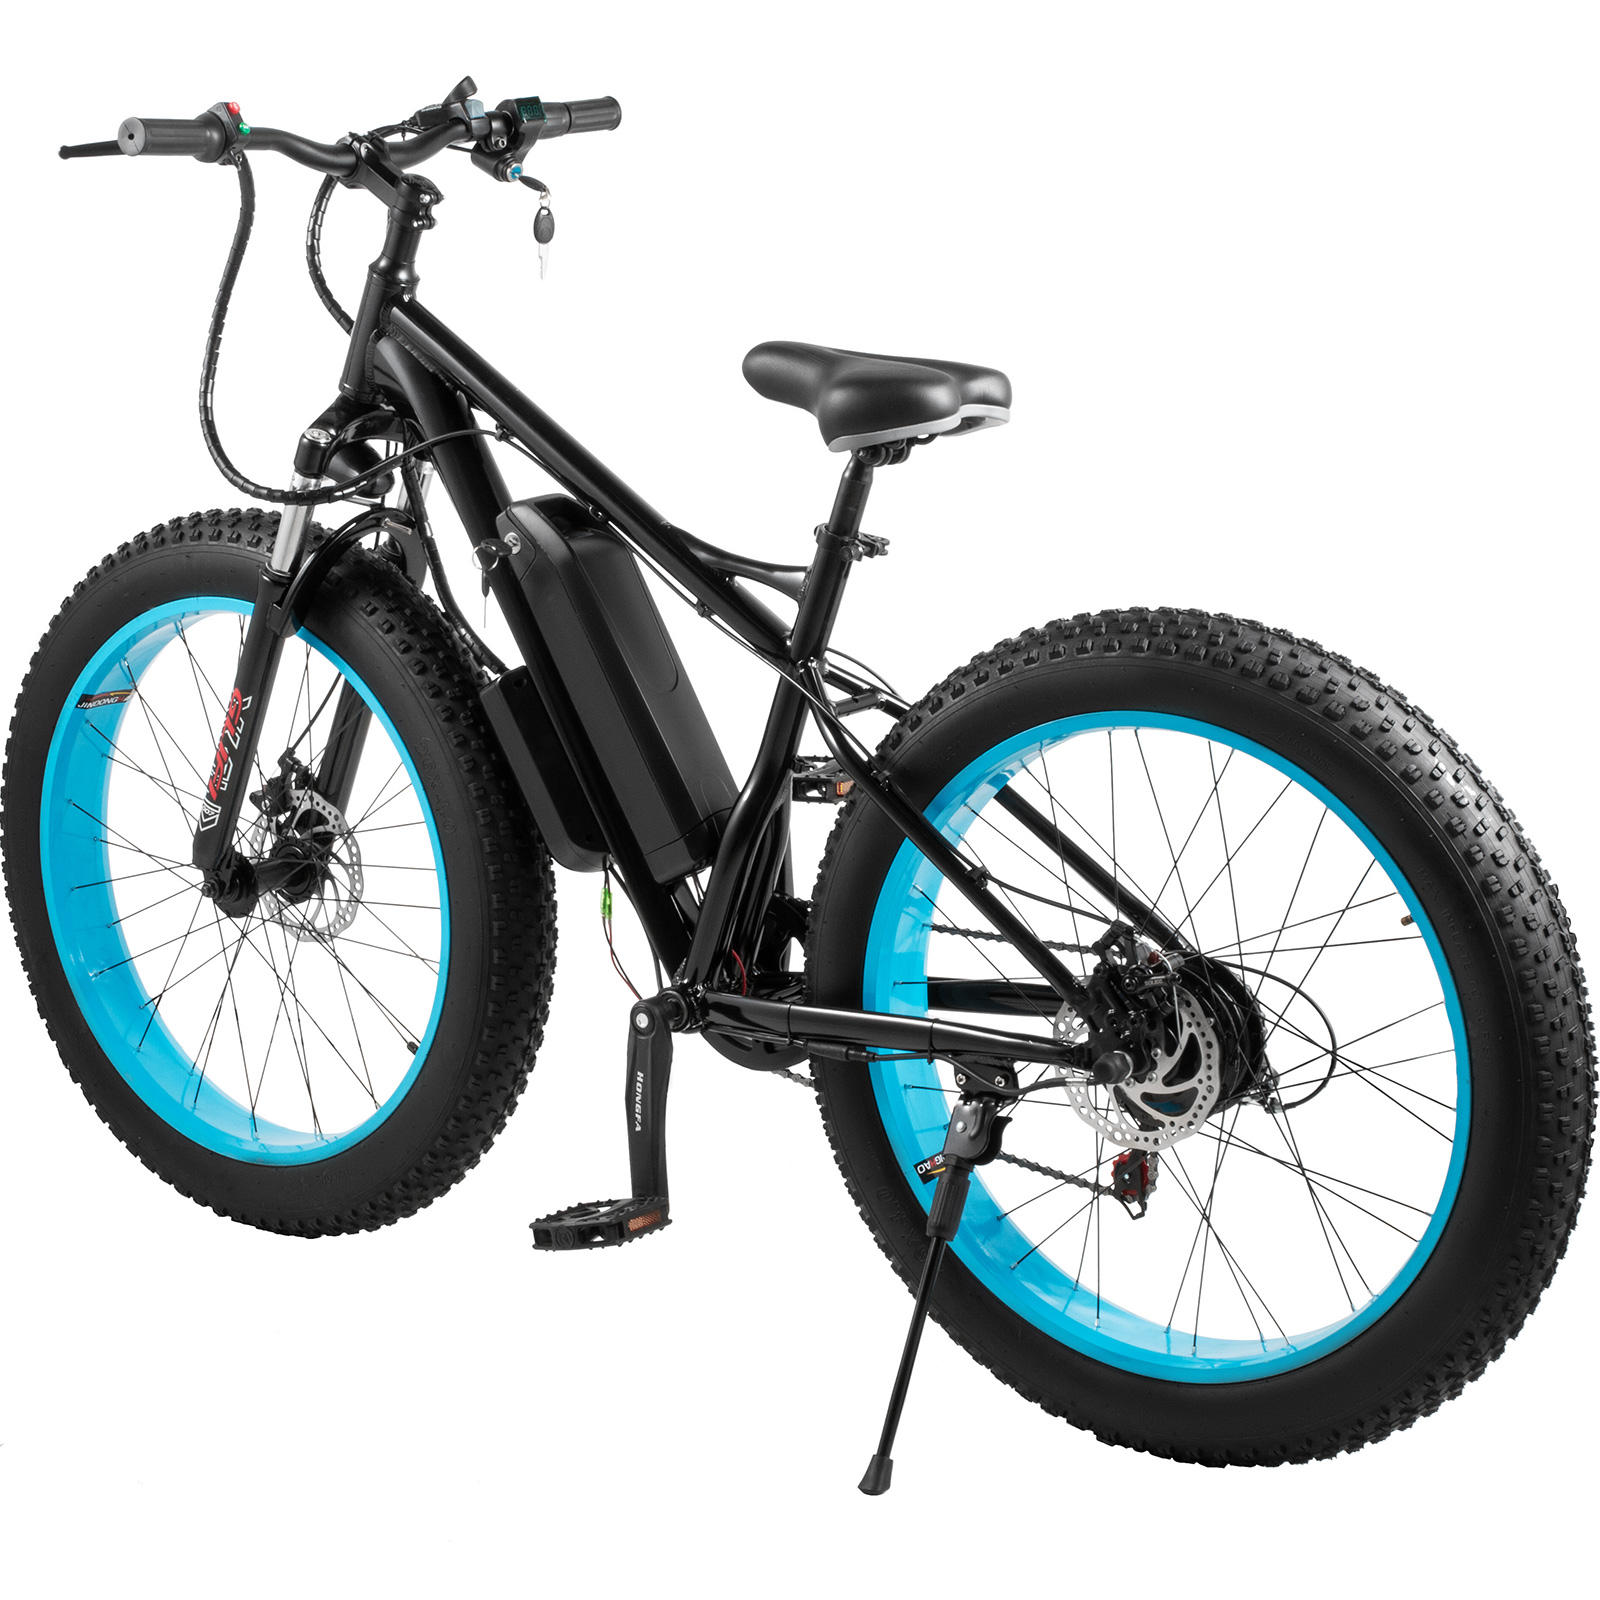 2020 new design electric bike scooter 48V bike electric bicycle/bicycles for Sale Electric Bike